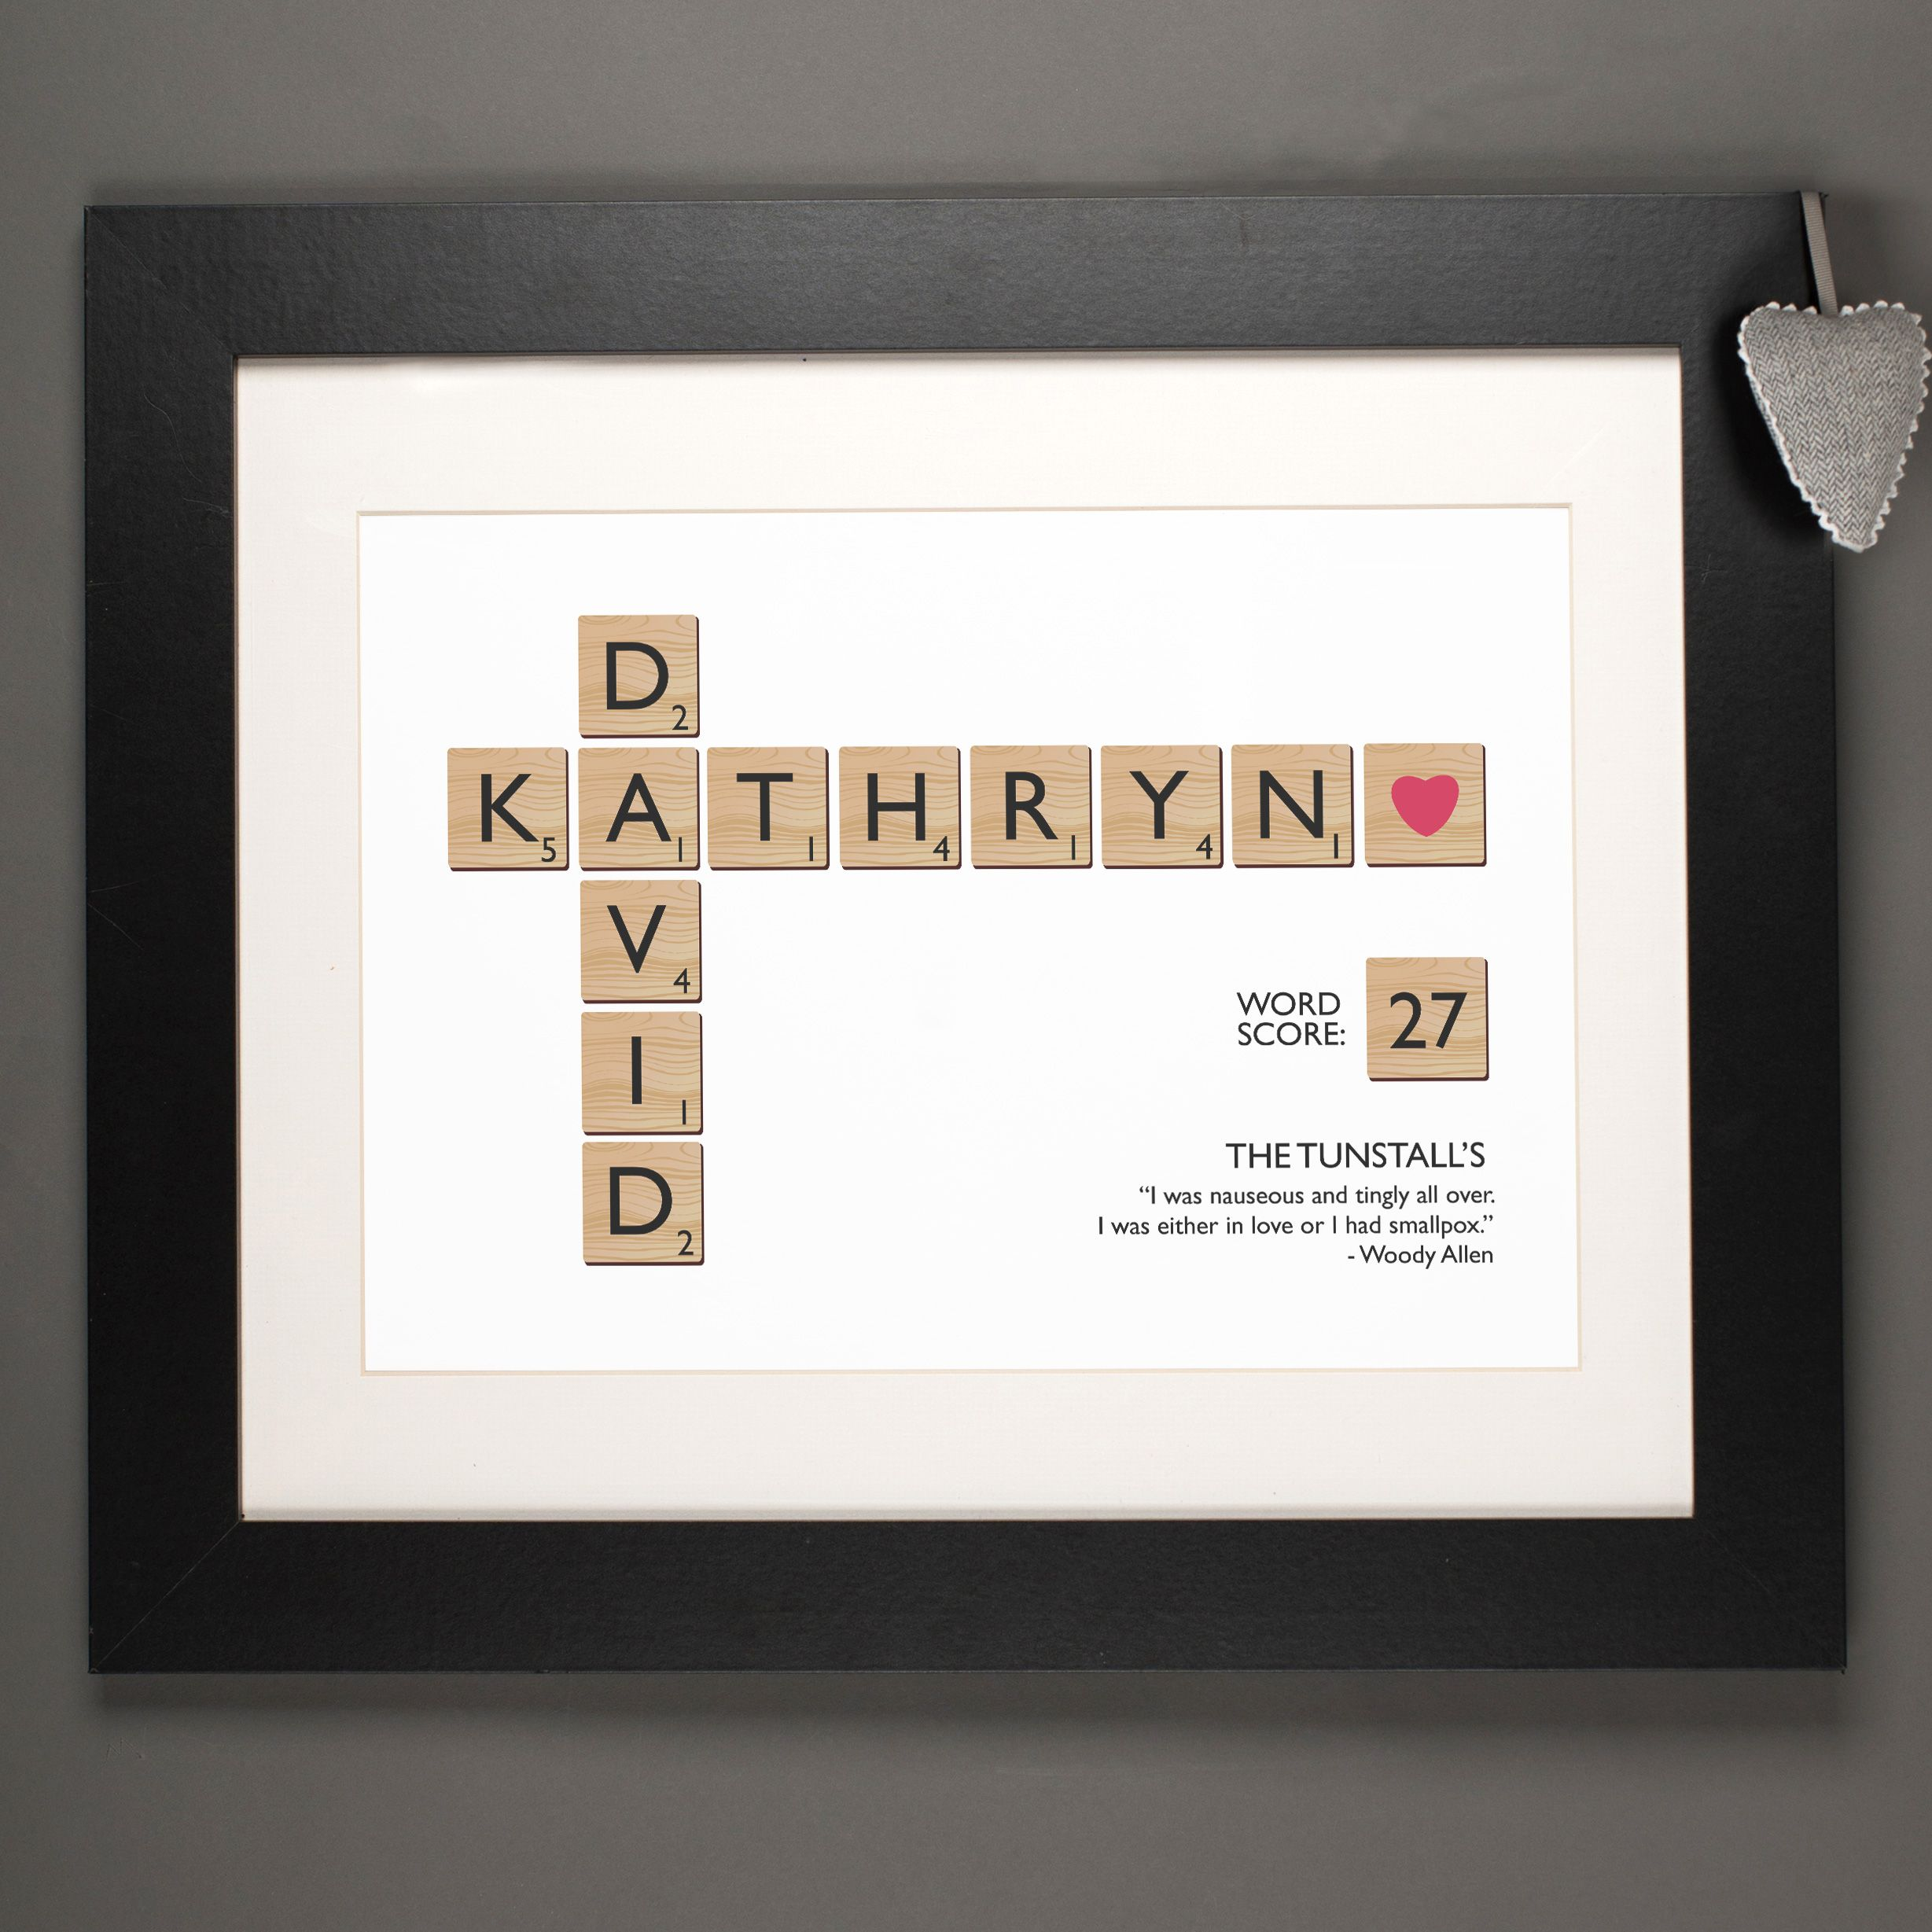 Make Wedding Gift: Personalized Gifts To Make At Home